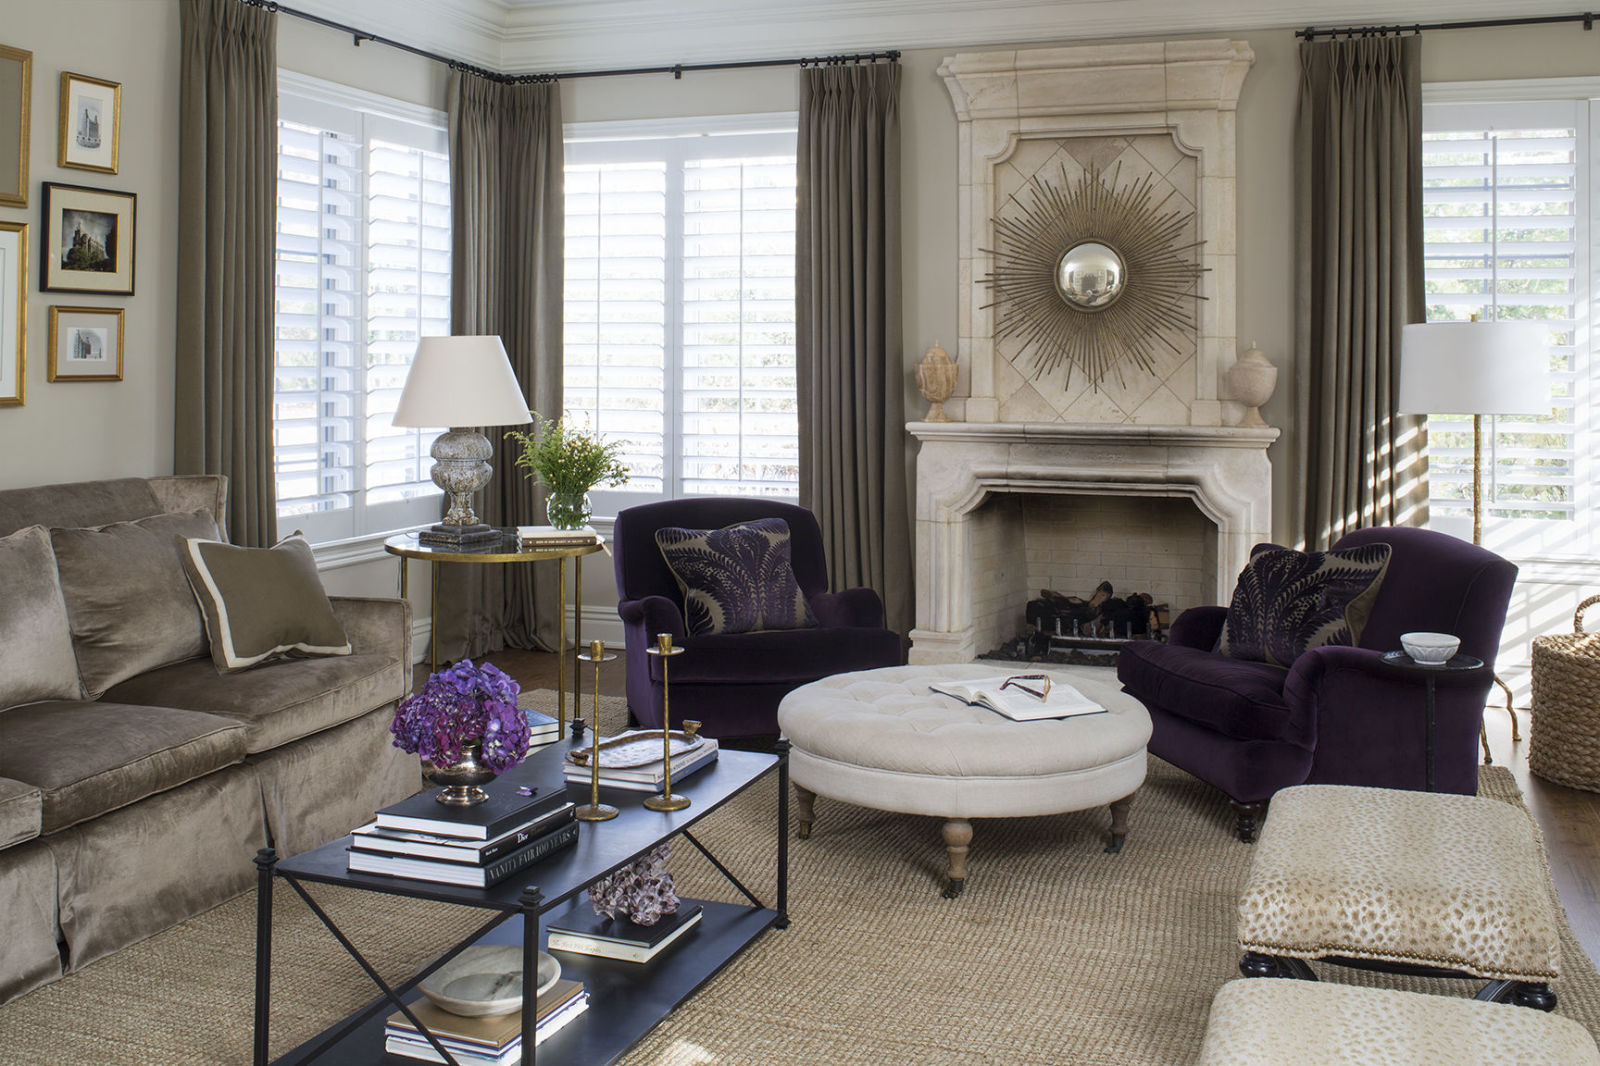 Living Room Current Decorating Trends fall 2015 home decorating trends decor autumn 2015